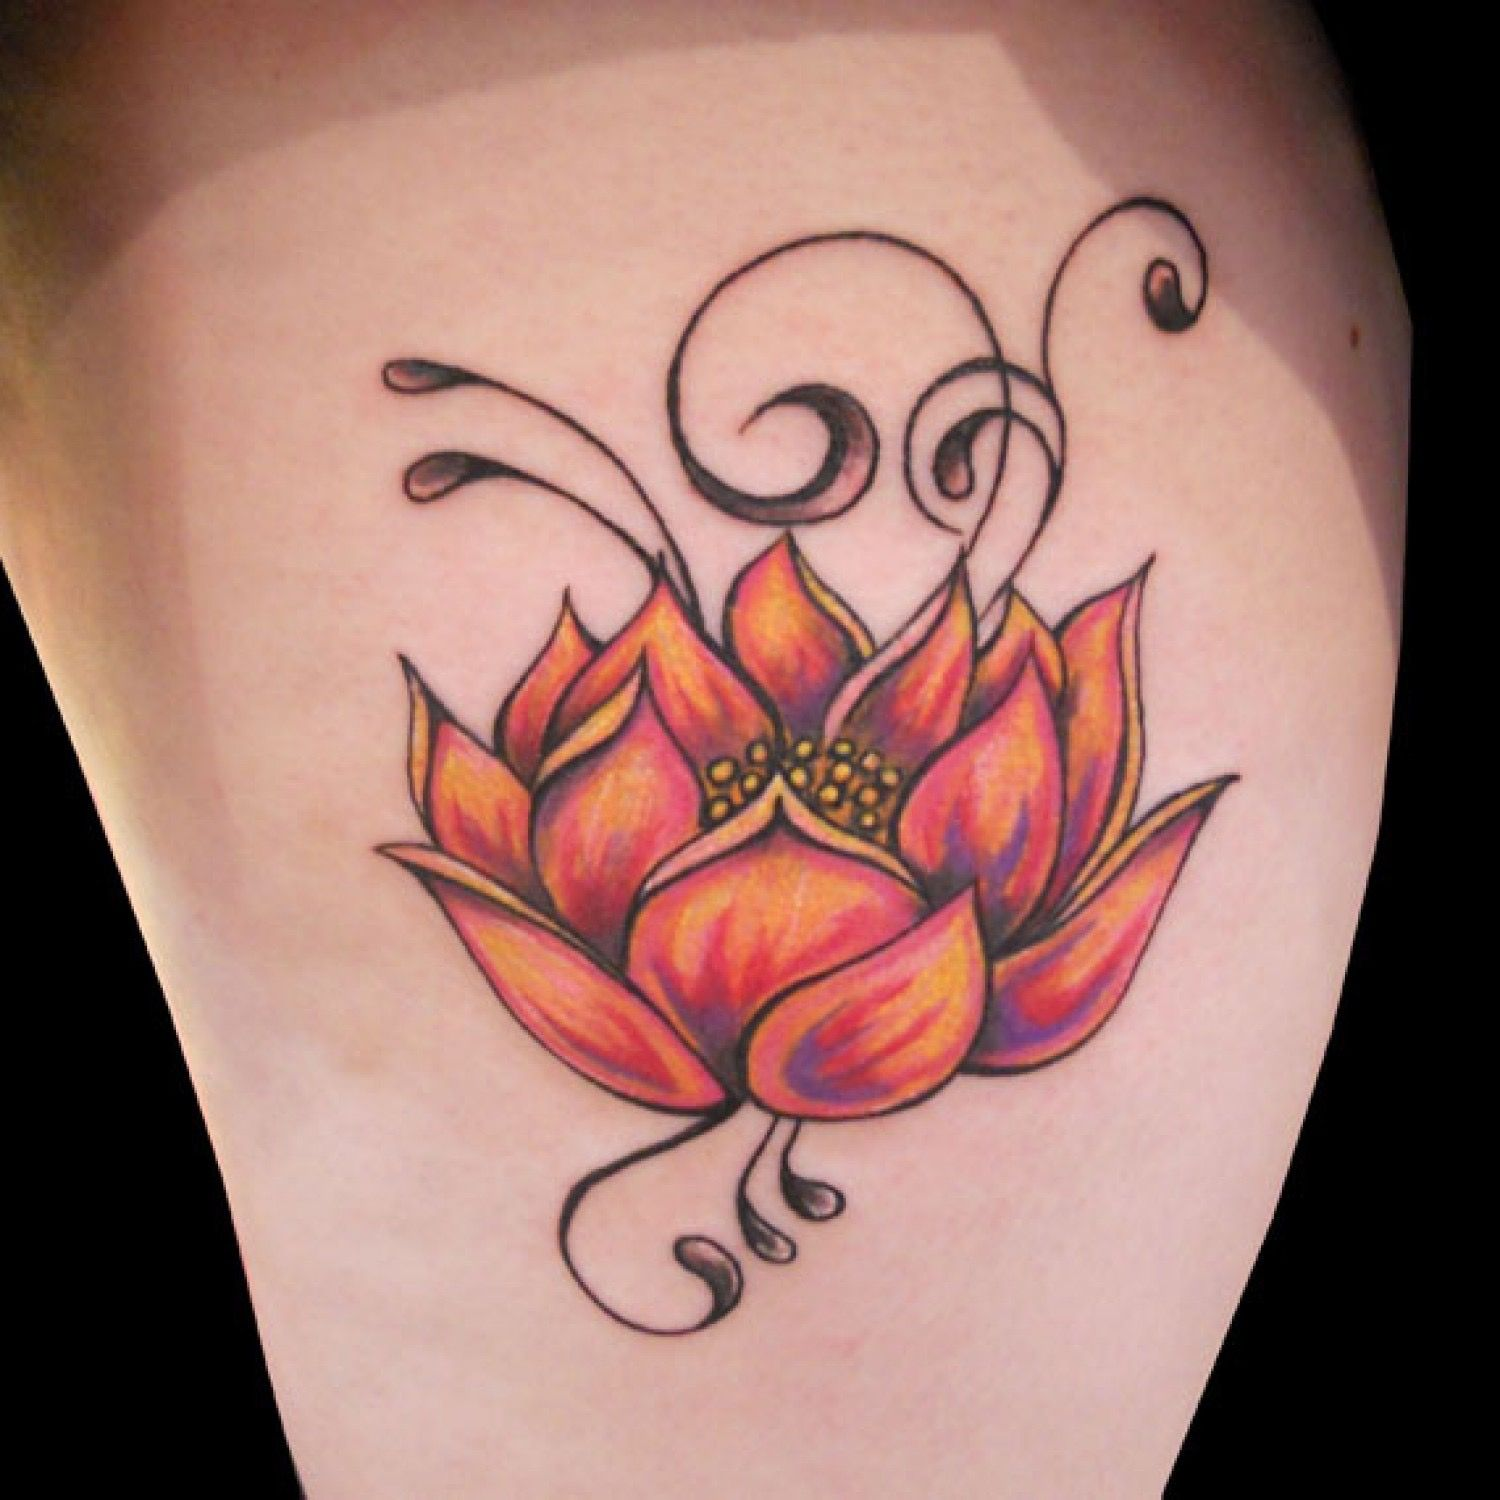 Orange lotus tattoo tattoos pinterest lotus tattoo and tattoo orange lotus tattoo izmirmasajfo